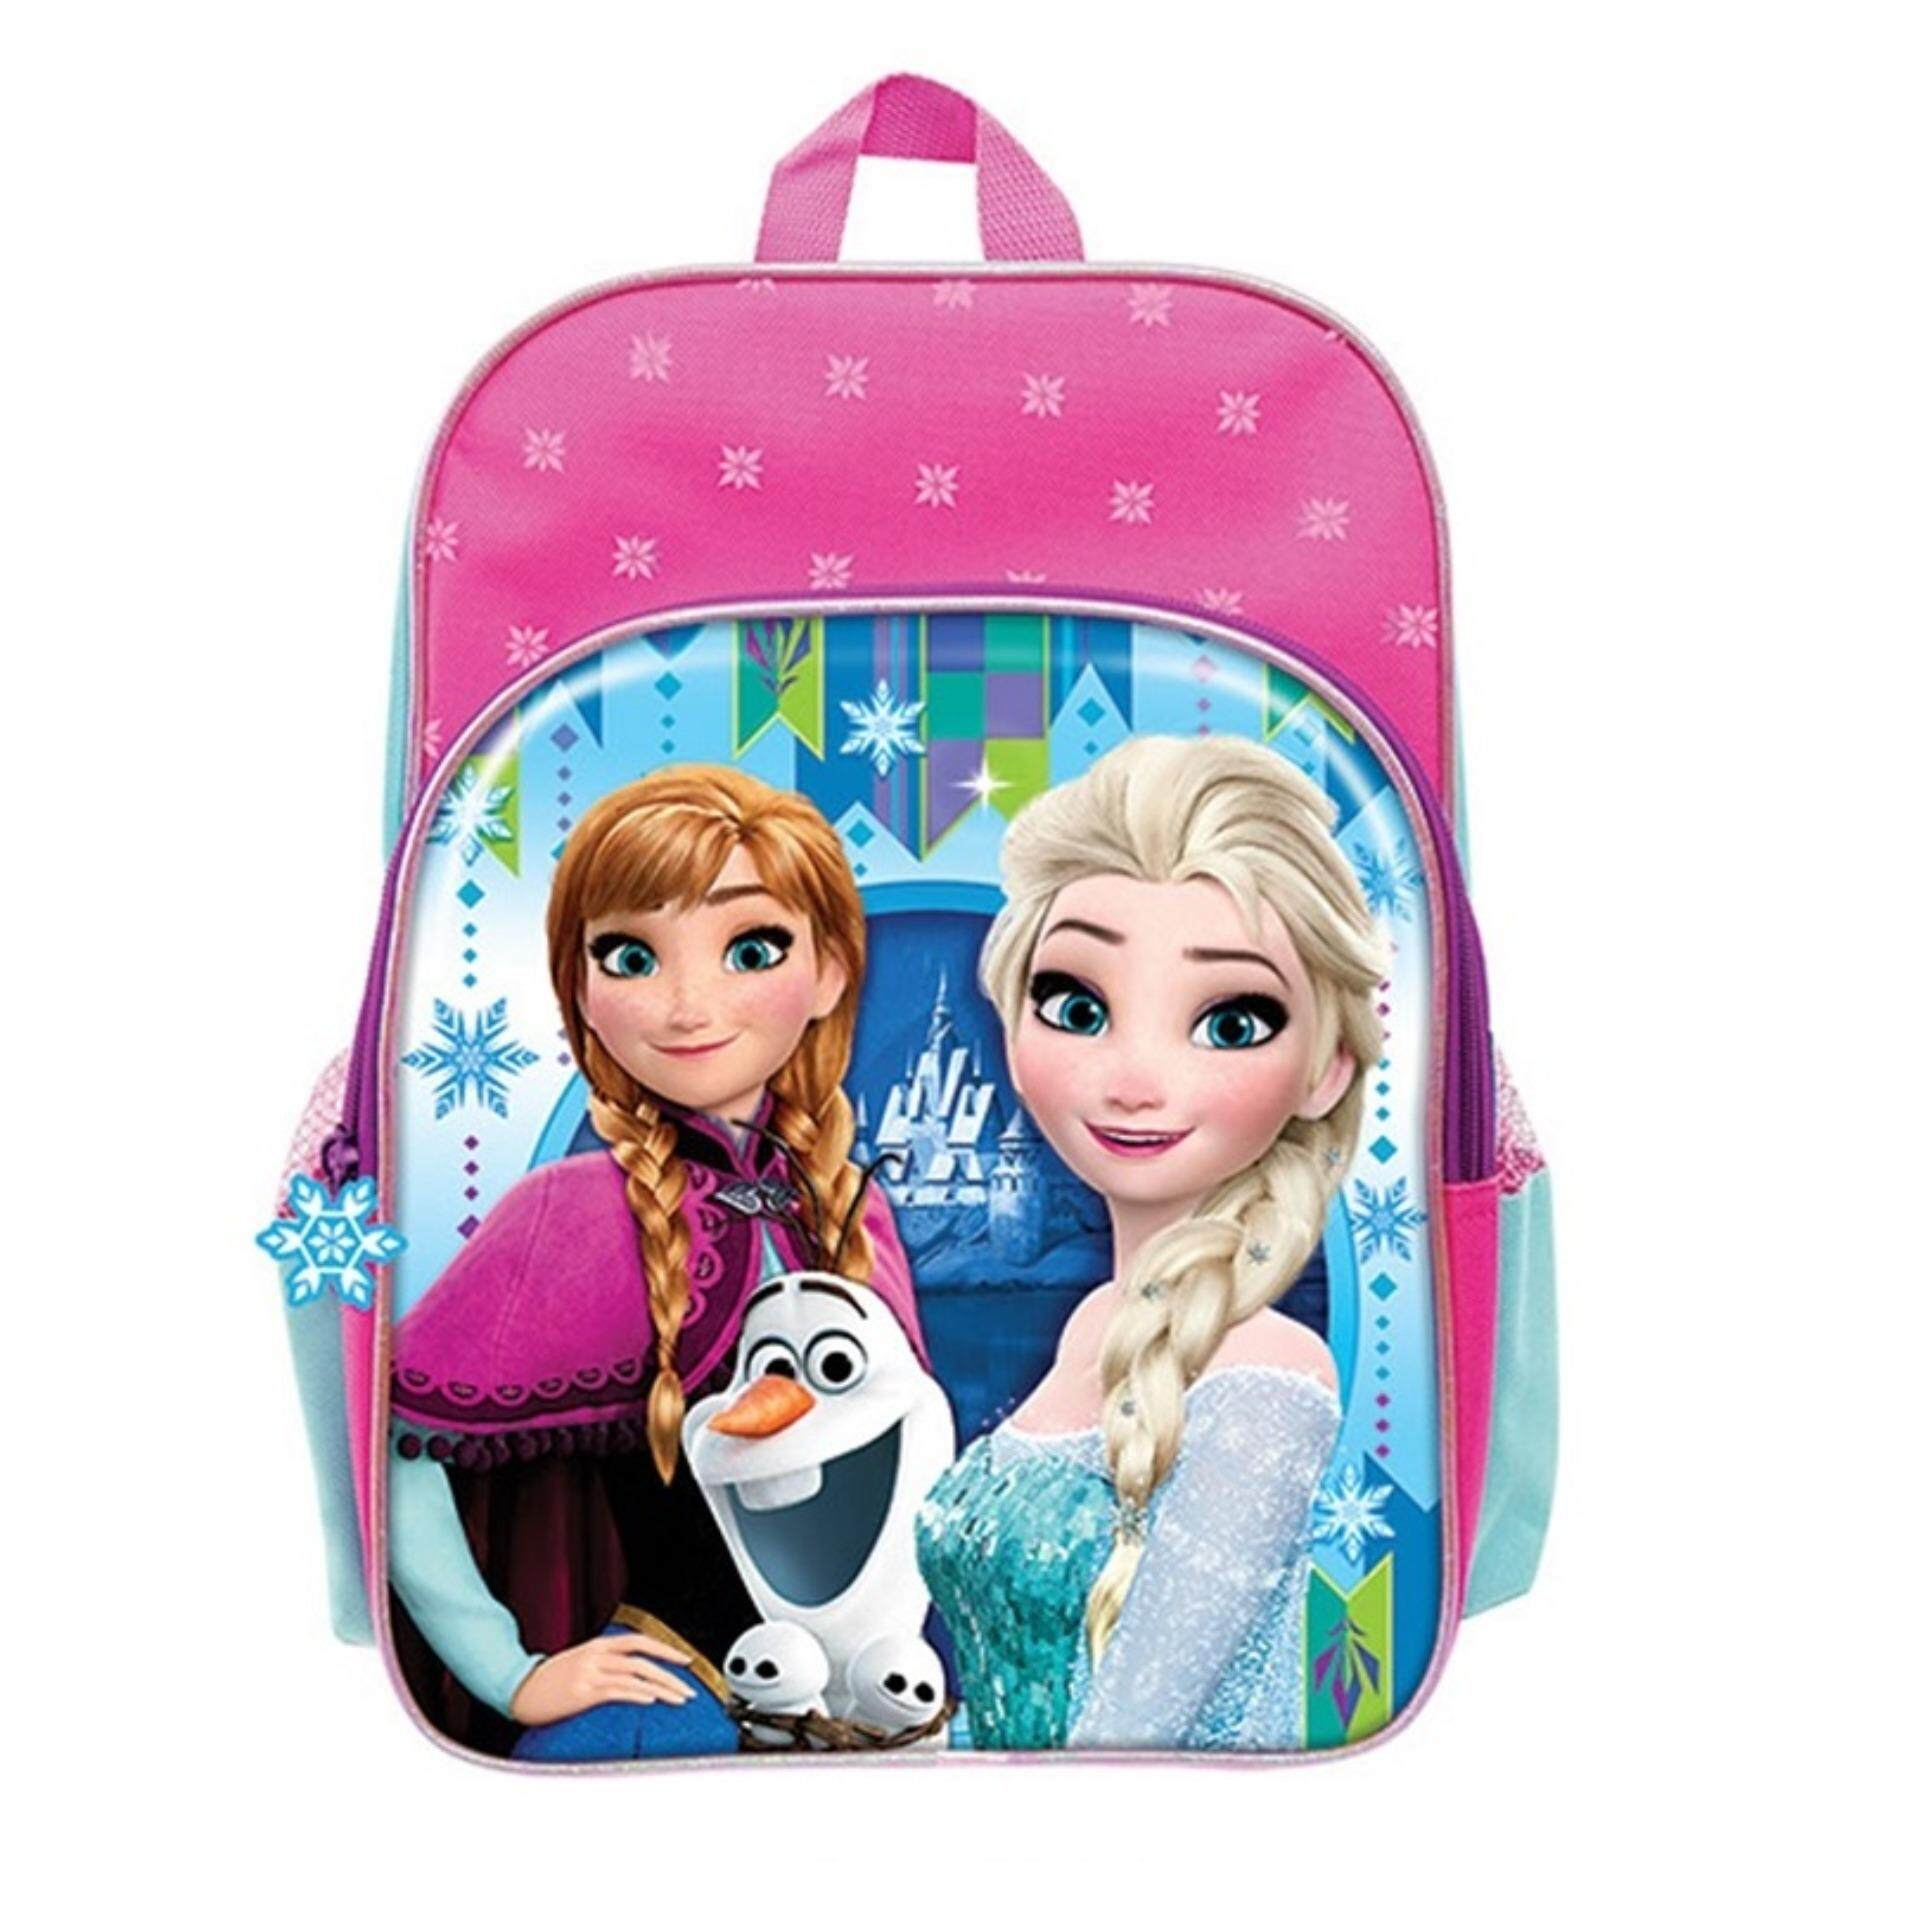 Disney Princess Frozen Backpack School Bag 12 Inches - Pink Colour